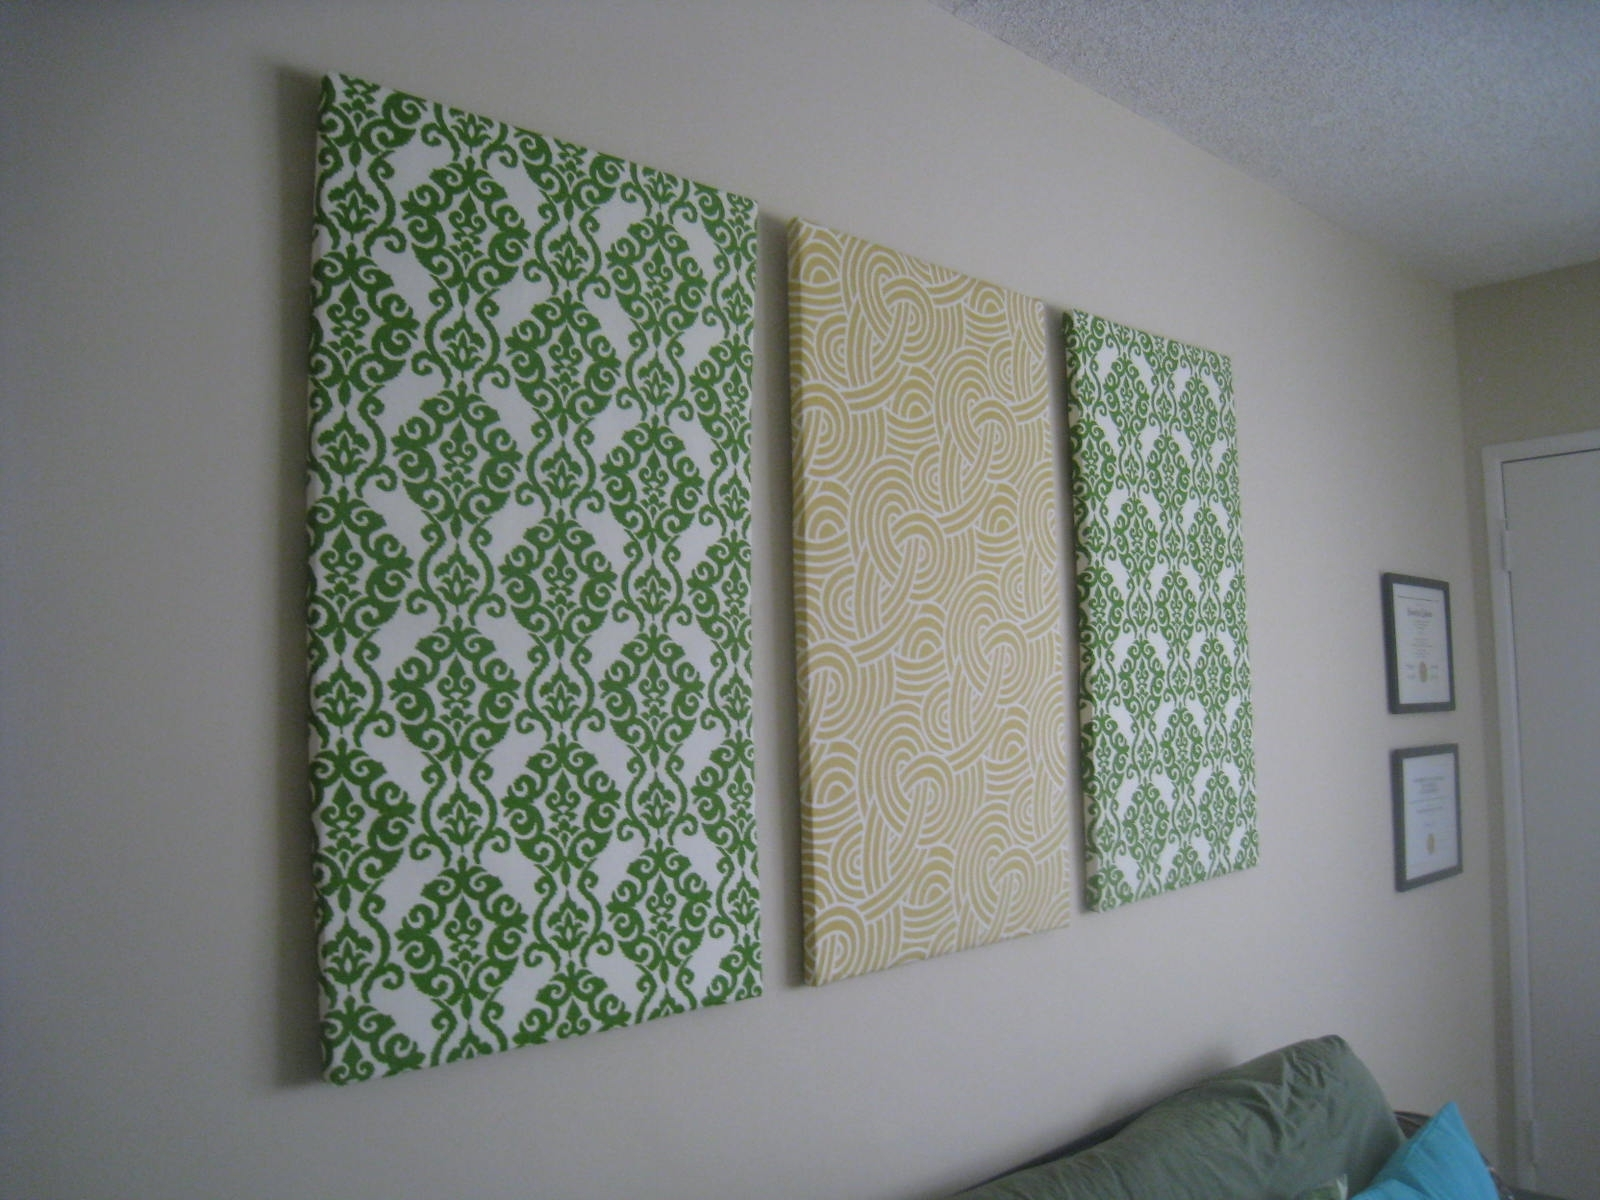 Art: Fabric Wall Art Diy Intended For Most Recent Large Fabric Wall Art (View 2 of 15)